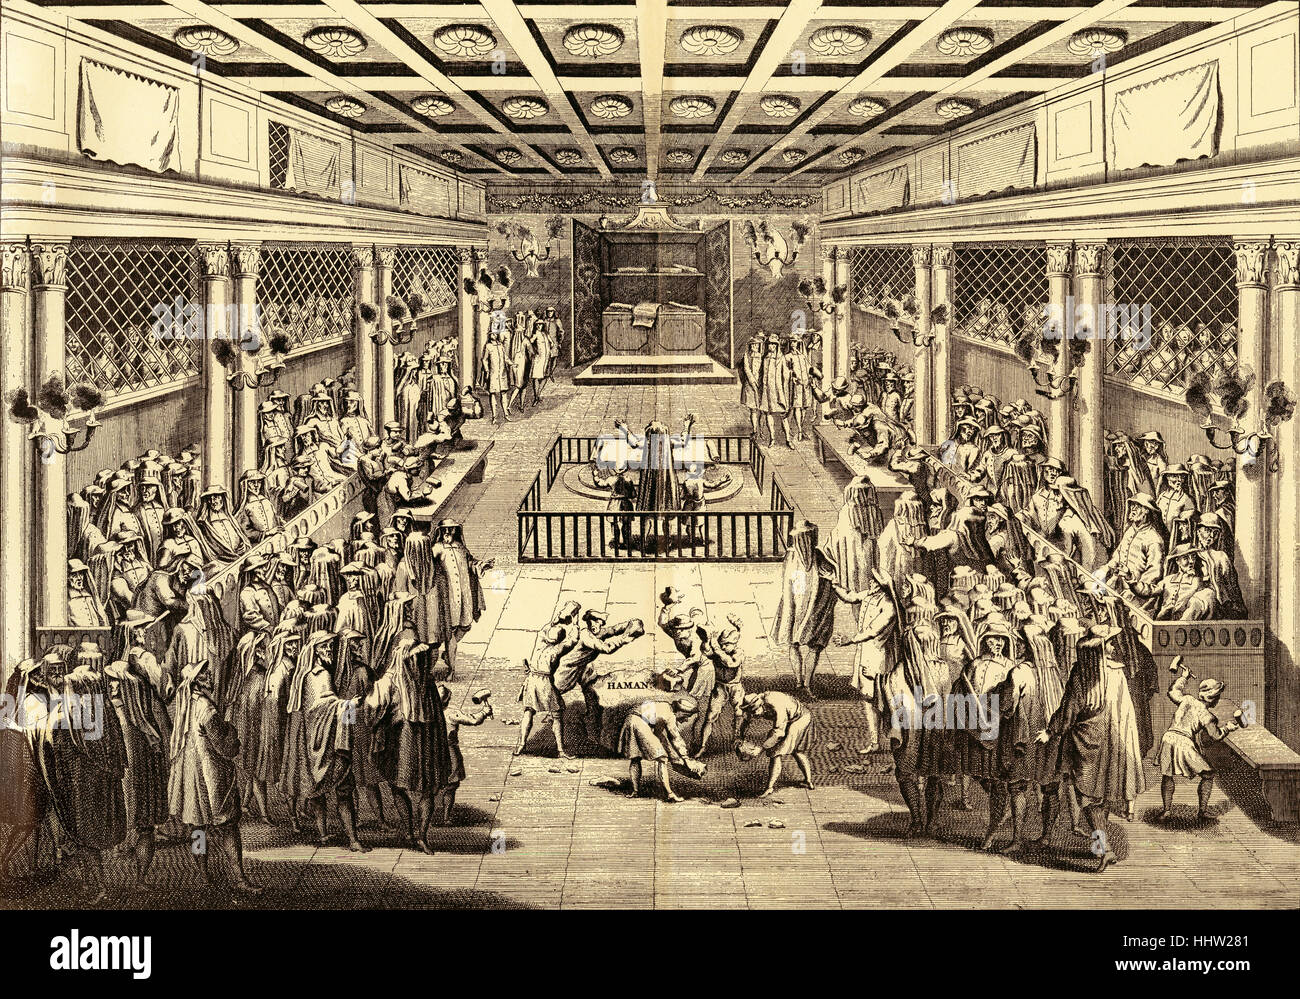 'Purim Ceremonies in the Synagogue at Amsterdam (From the Amsterdam Edition of Calmet Printed in 1731.)' - Stock Image